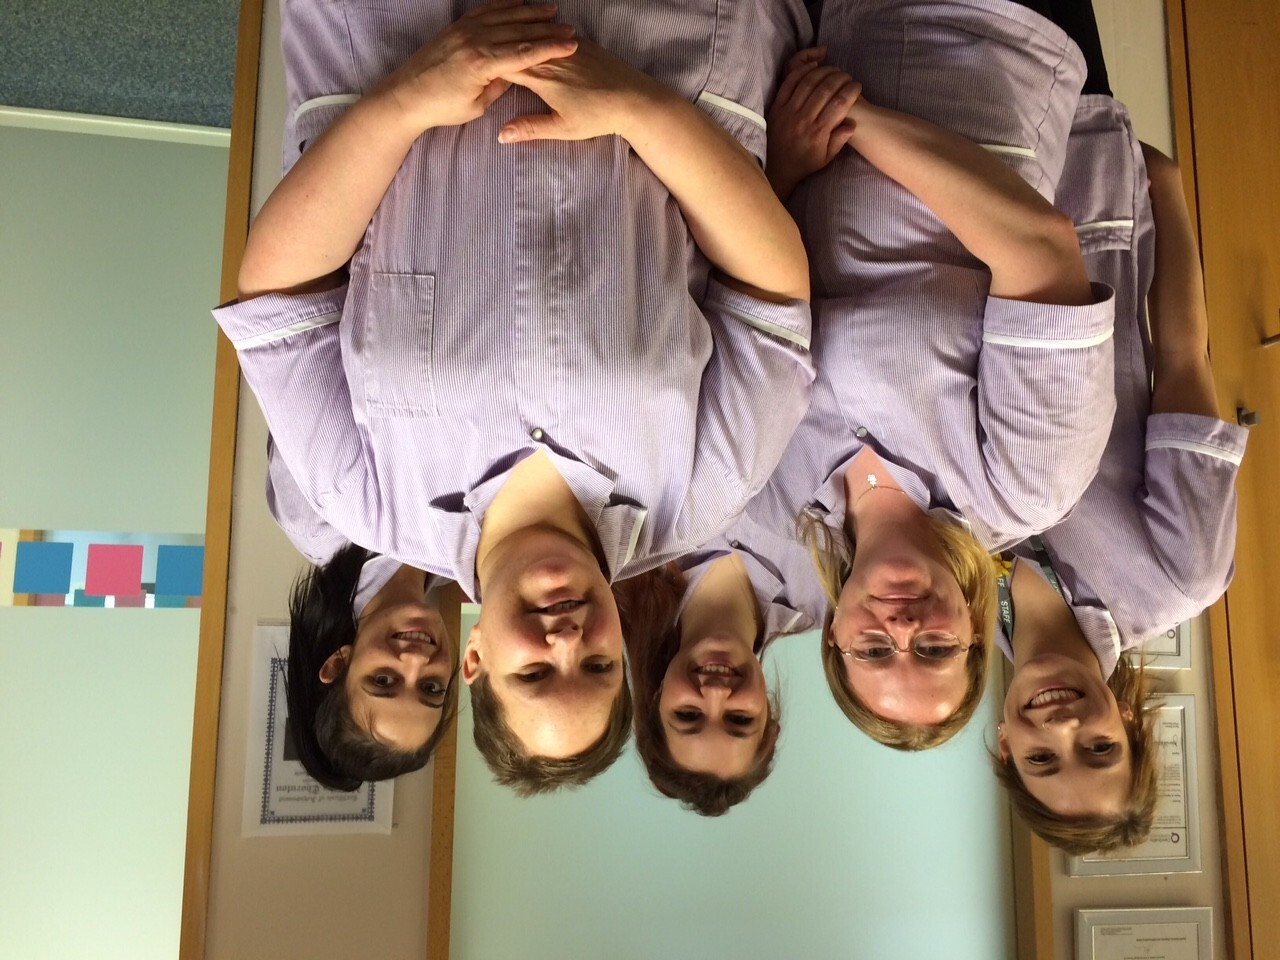 Person Centred Care - The Team